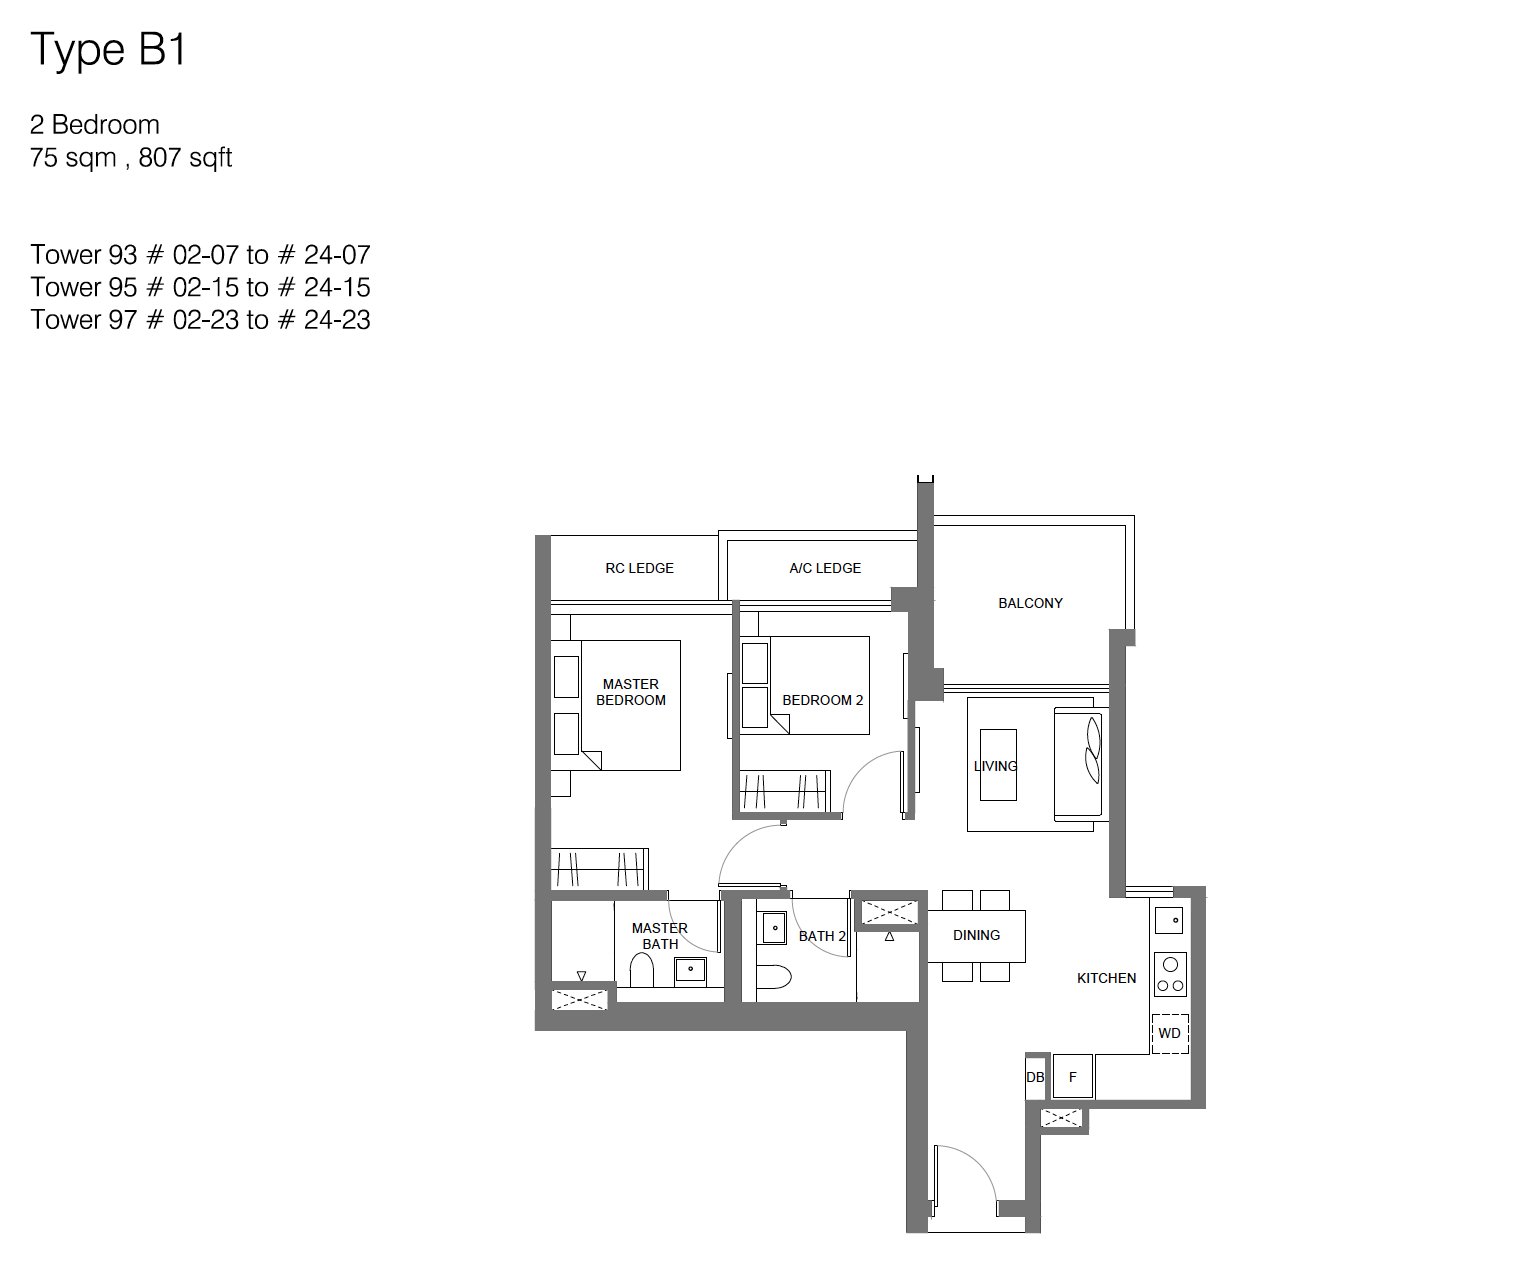 Principal Garden floor plan - 2 bedroom